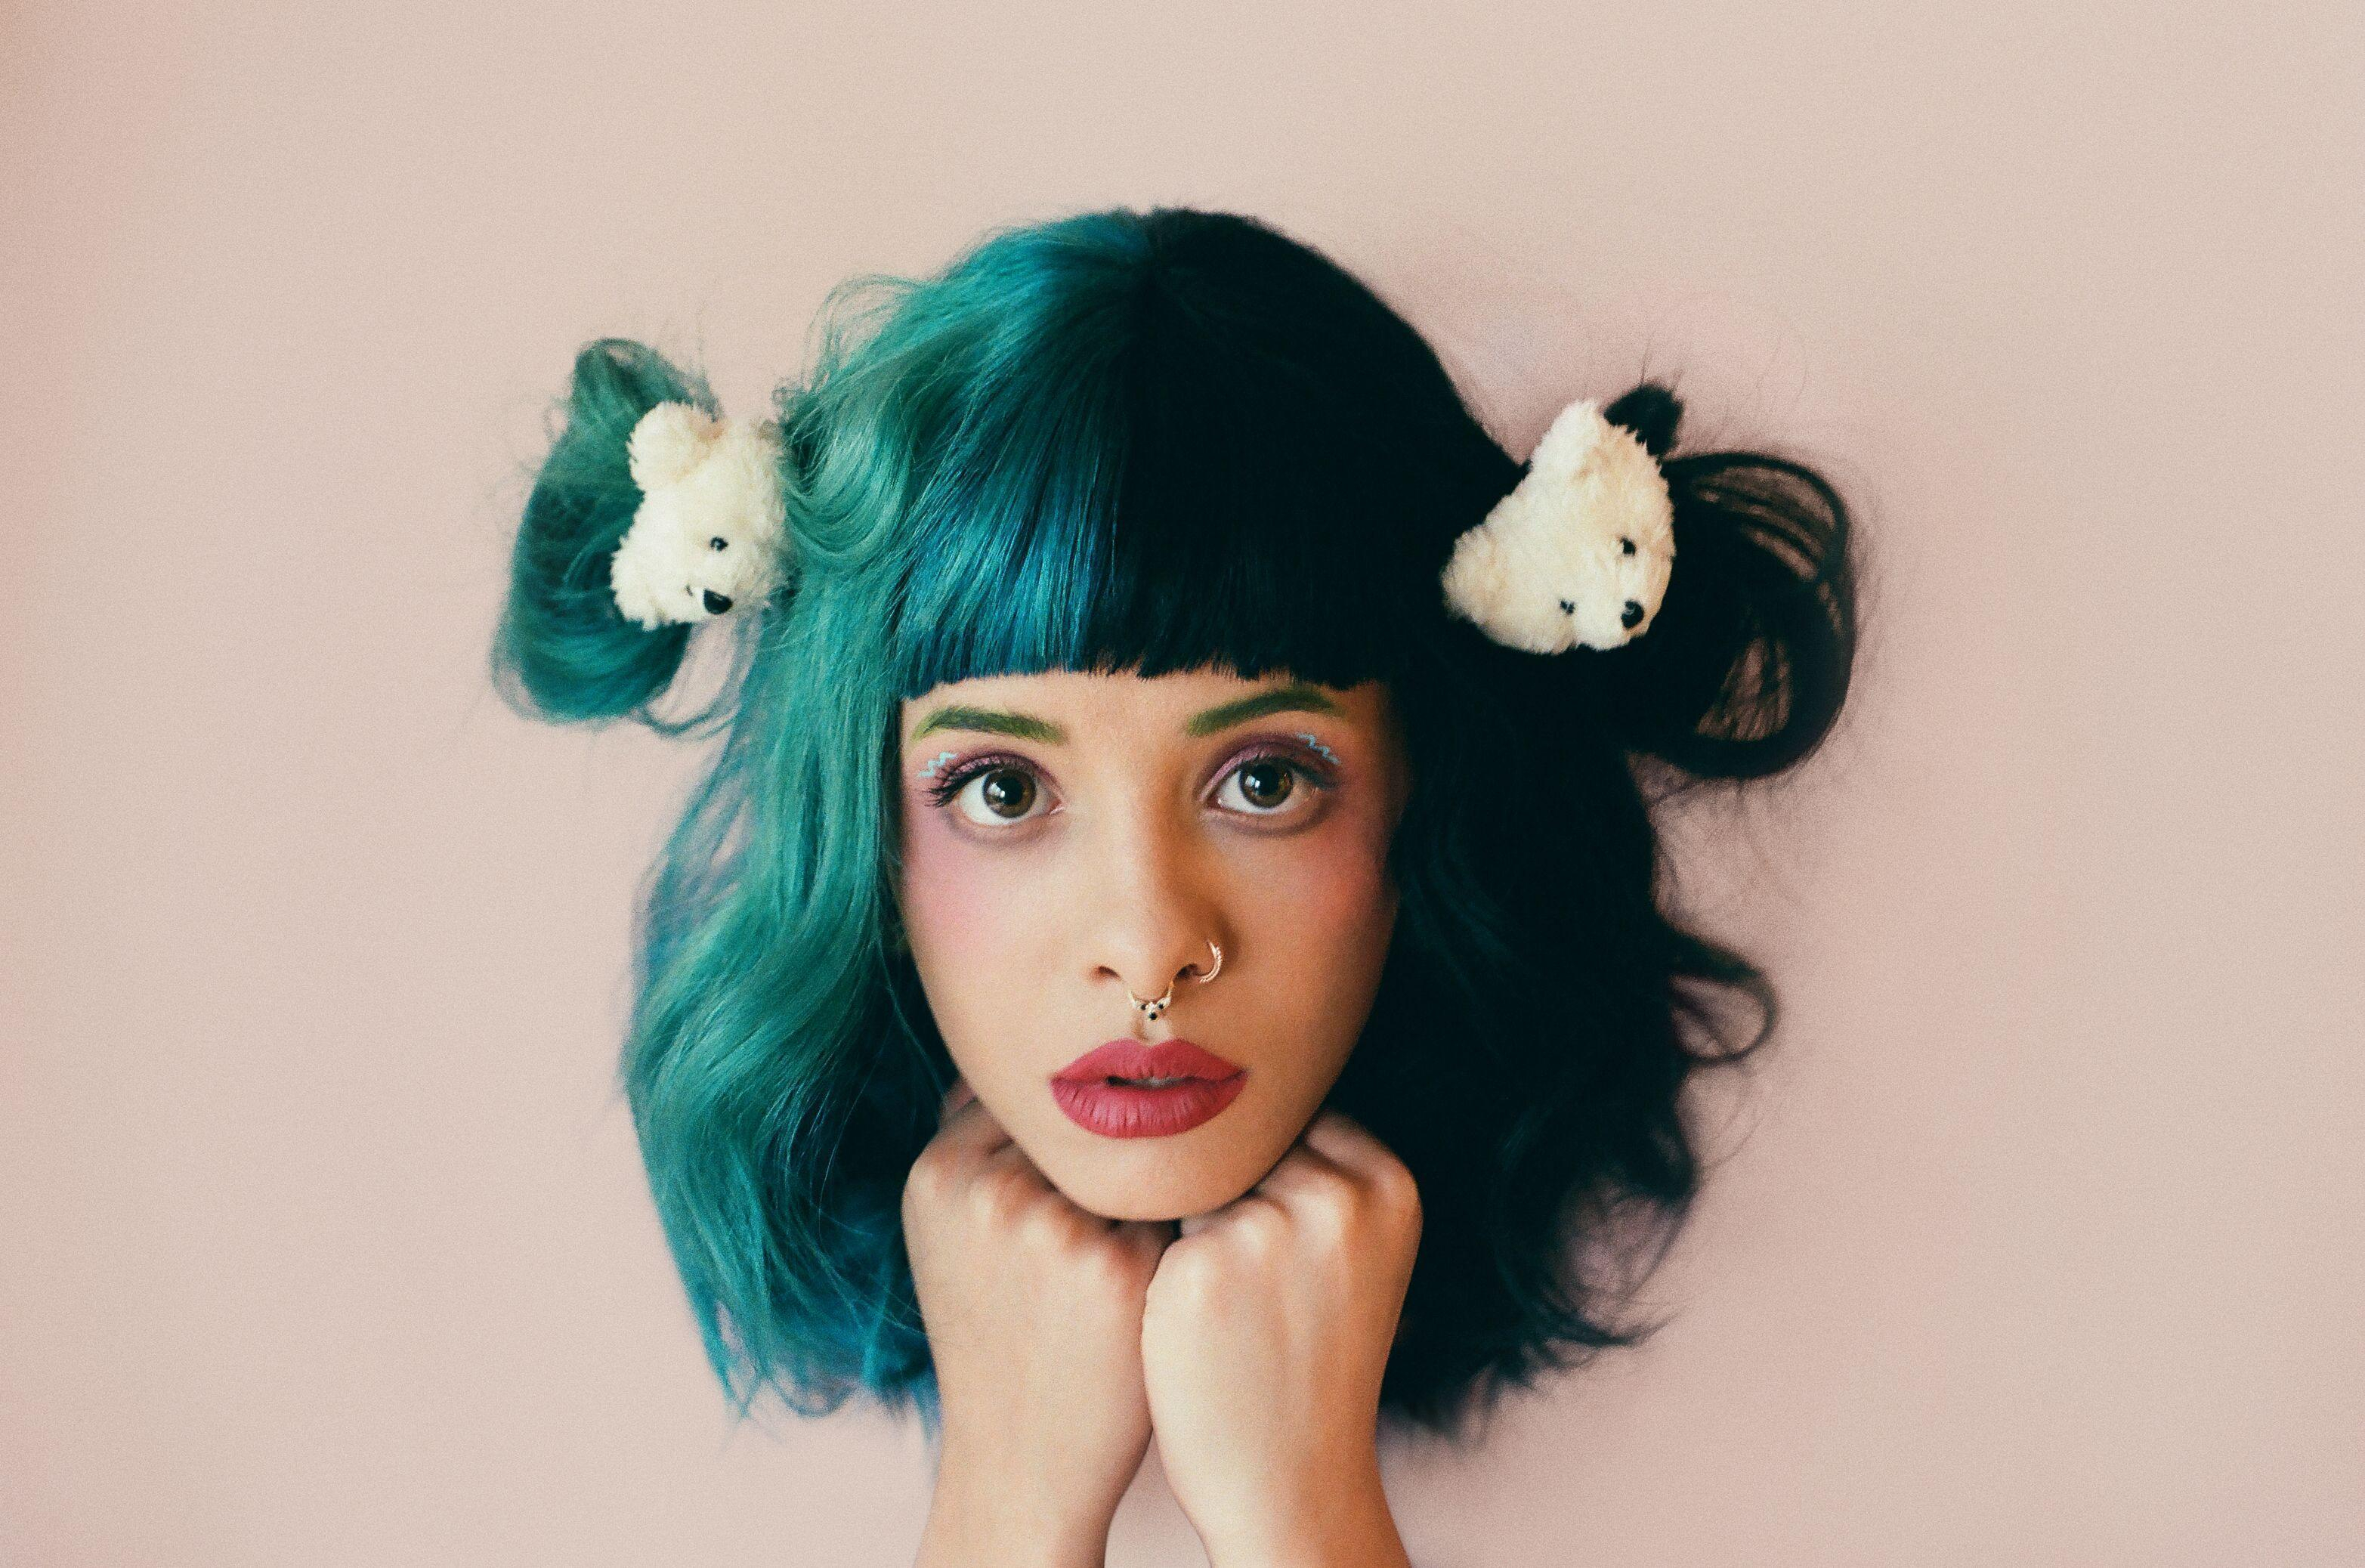 melanie martinez wallpapers - wallpaper cave